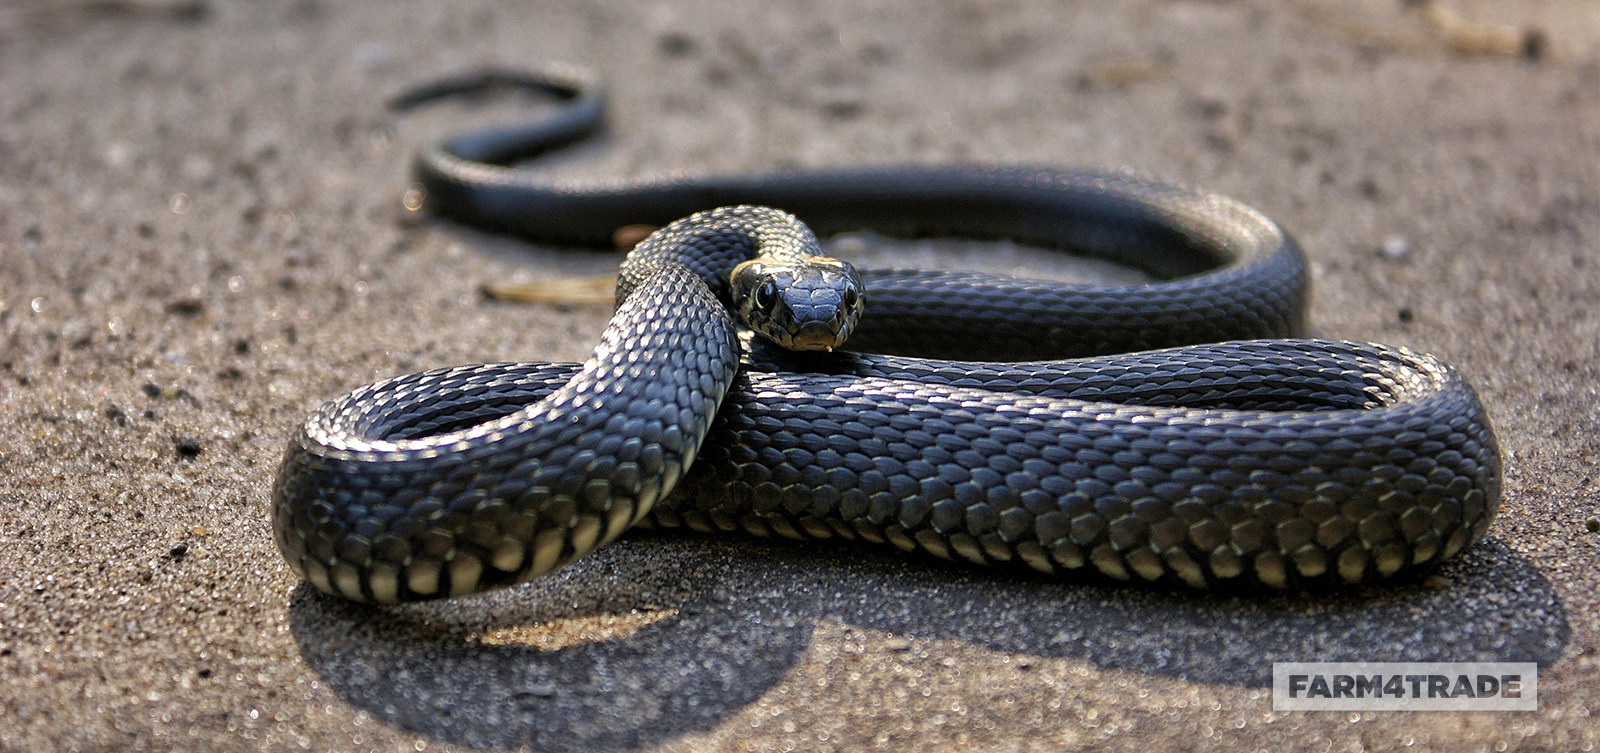 The side effects of fighting snakes - Blog Farm4Trade